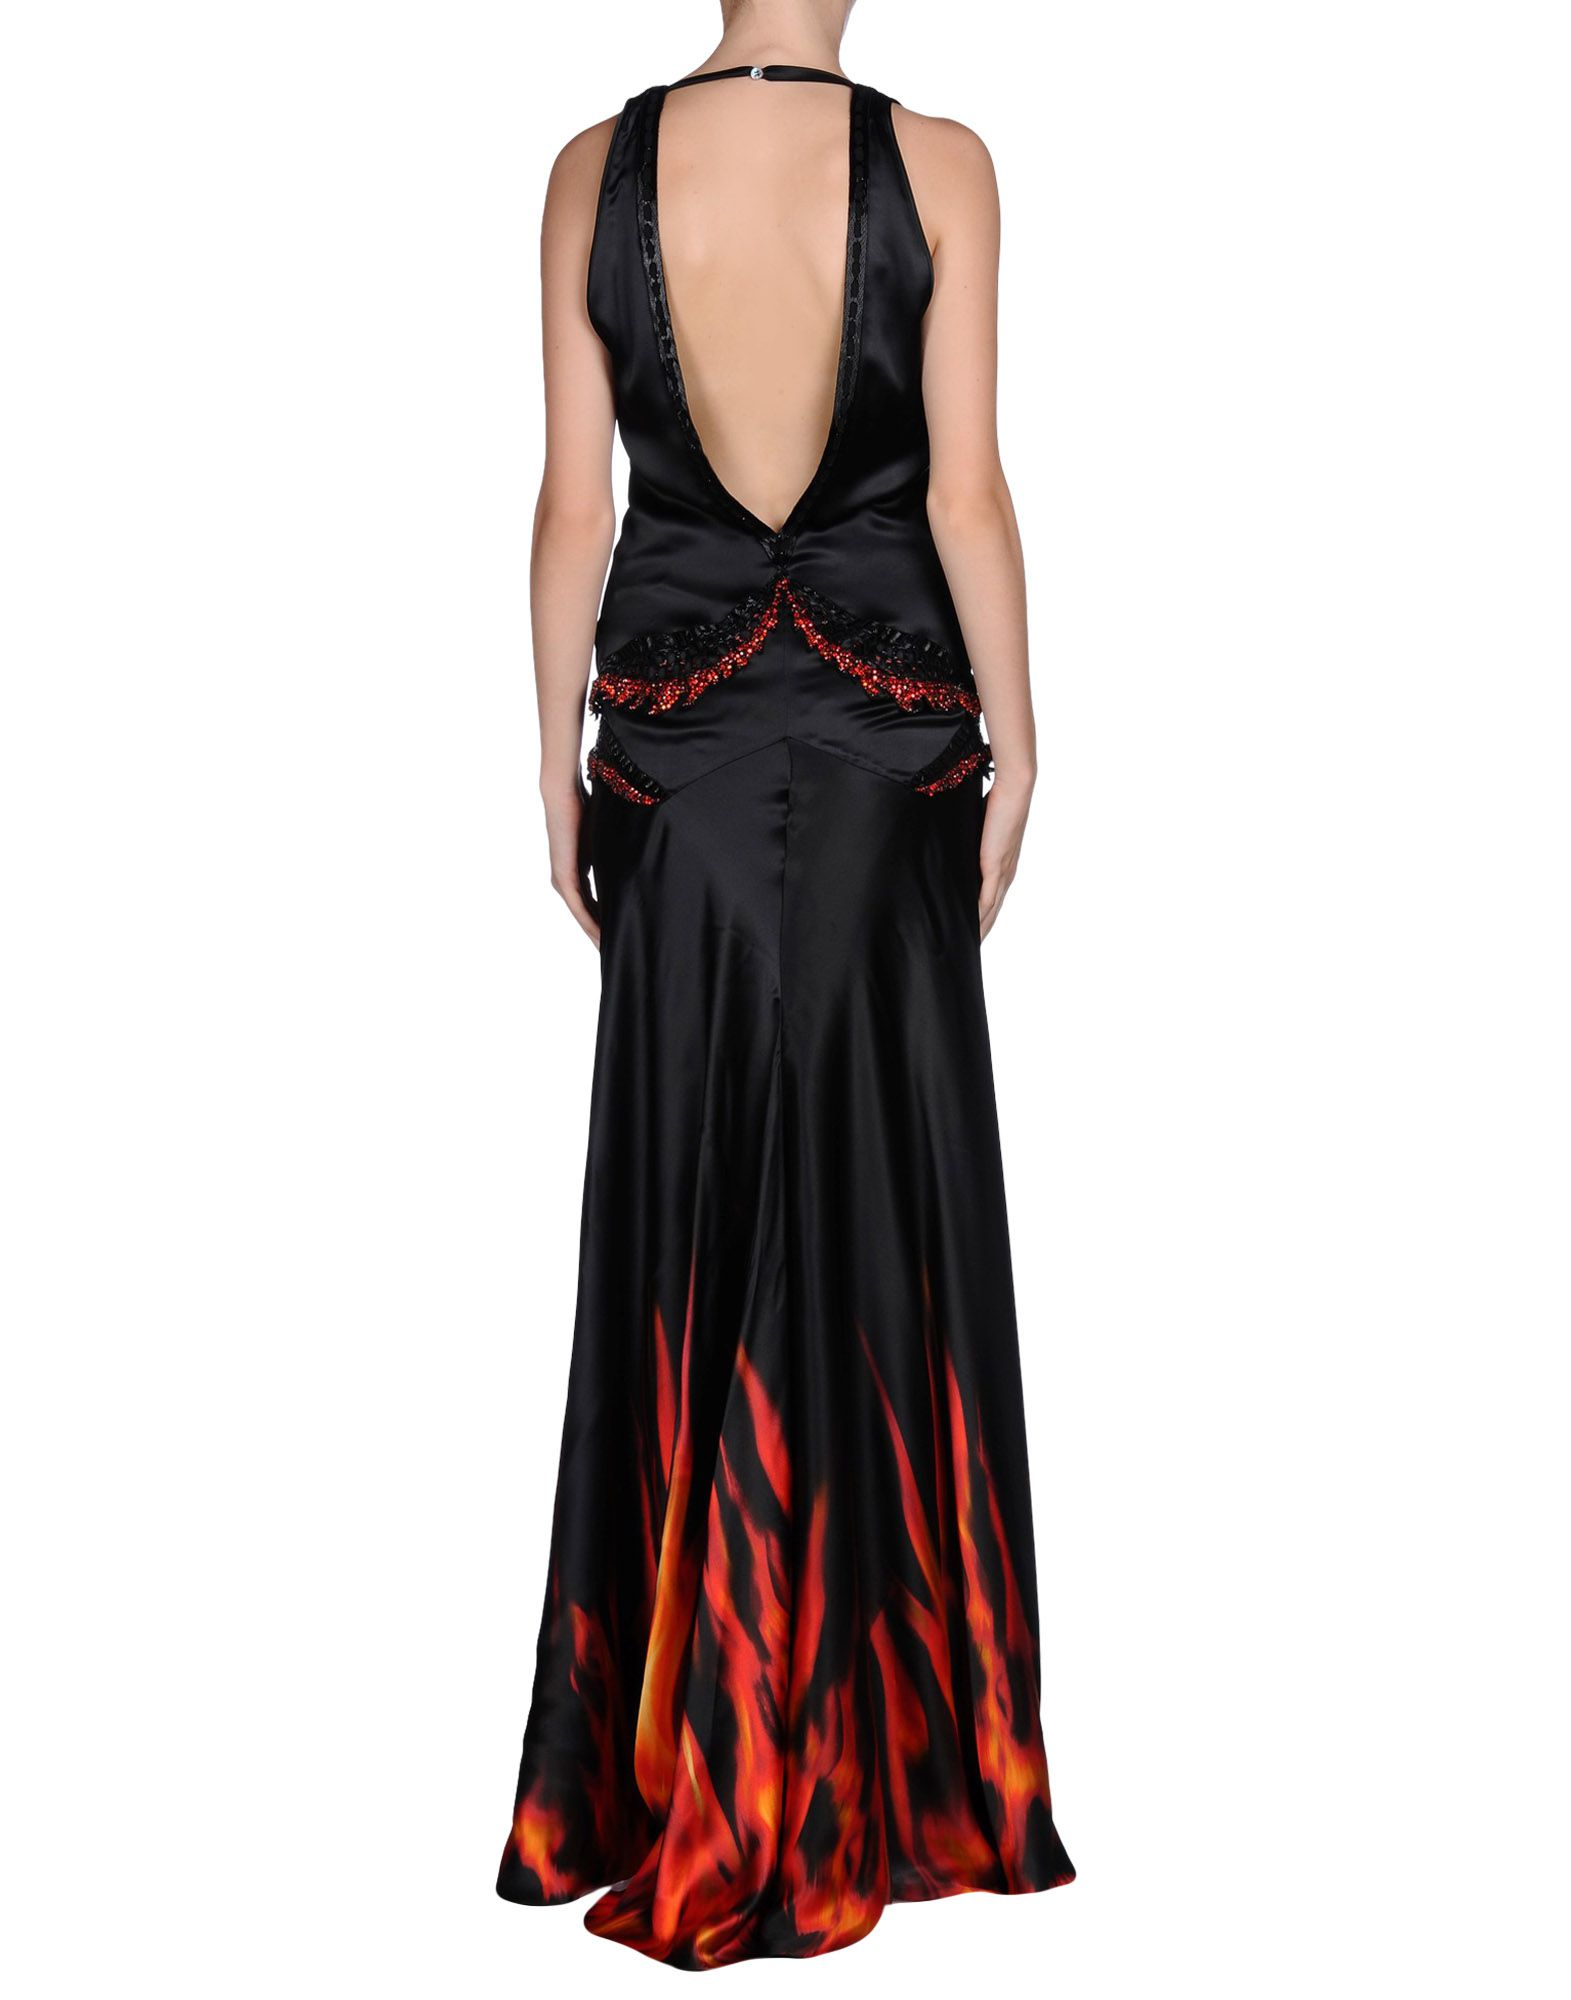 Shop for Roberto cavalli Women's Dresses at Shopzilla. Buy Clothing & Accessories online and read professional reviews on Roberto cavalli Women's Dresses. Find .